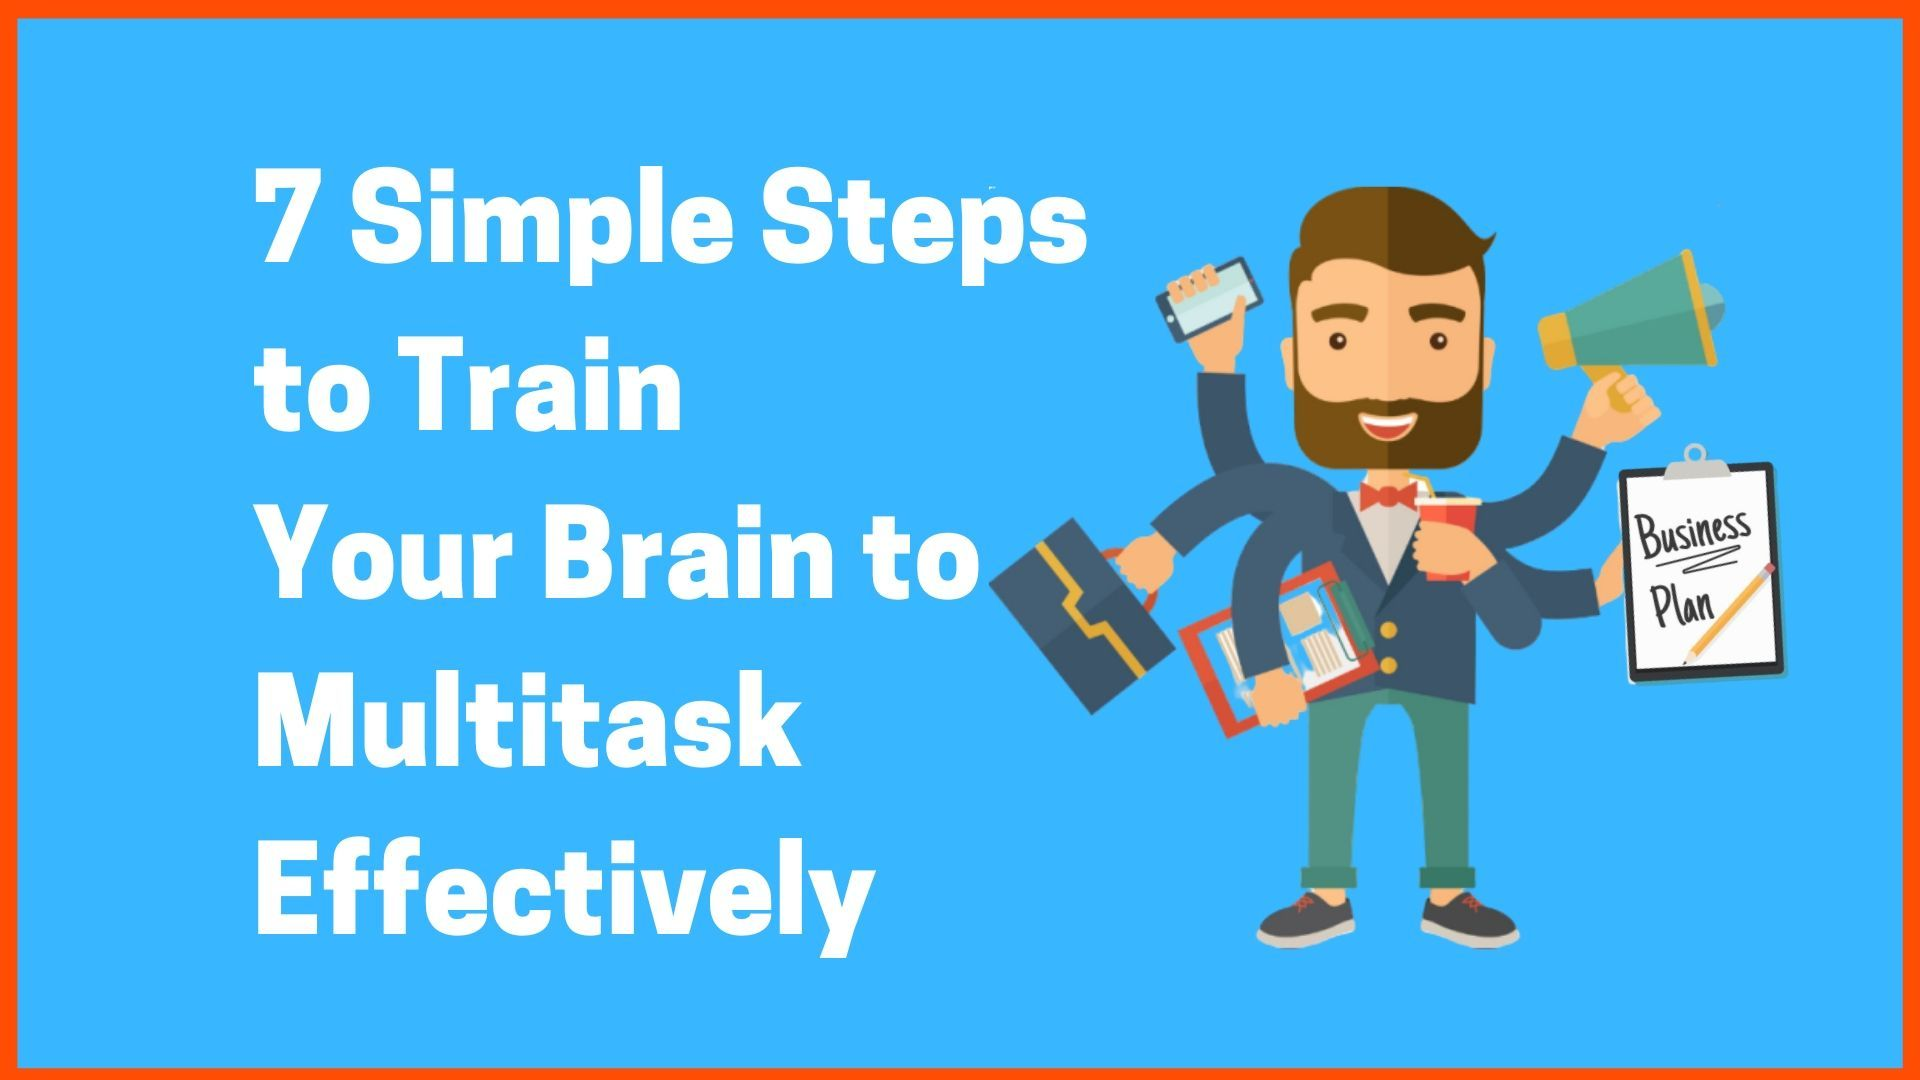 7 Simple Steps to Train Your Brain to Multitask Effectively